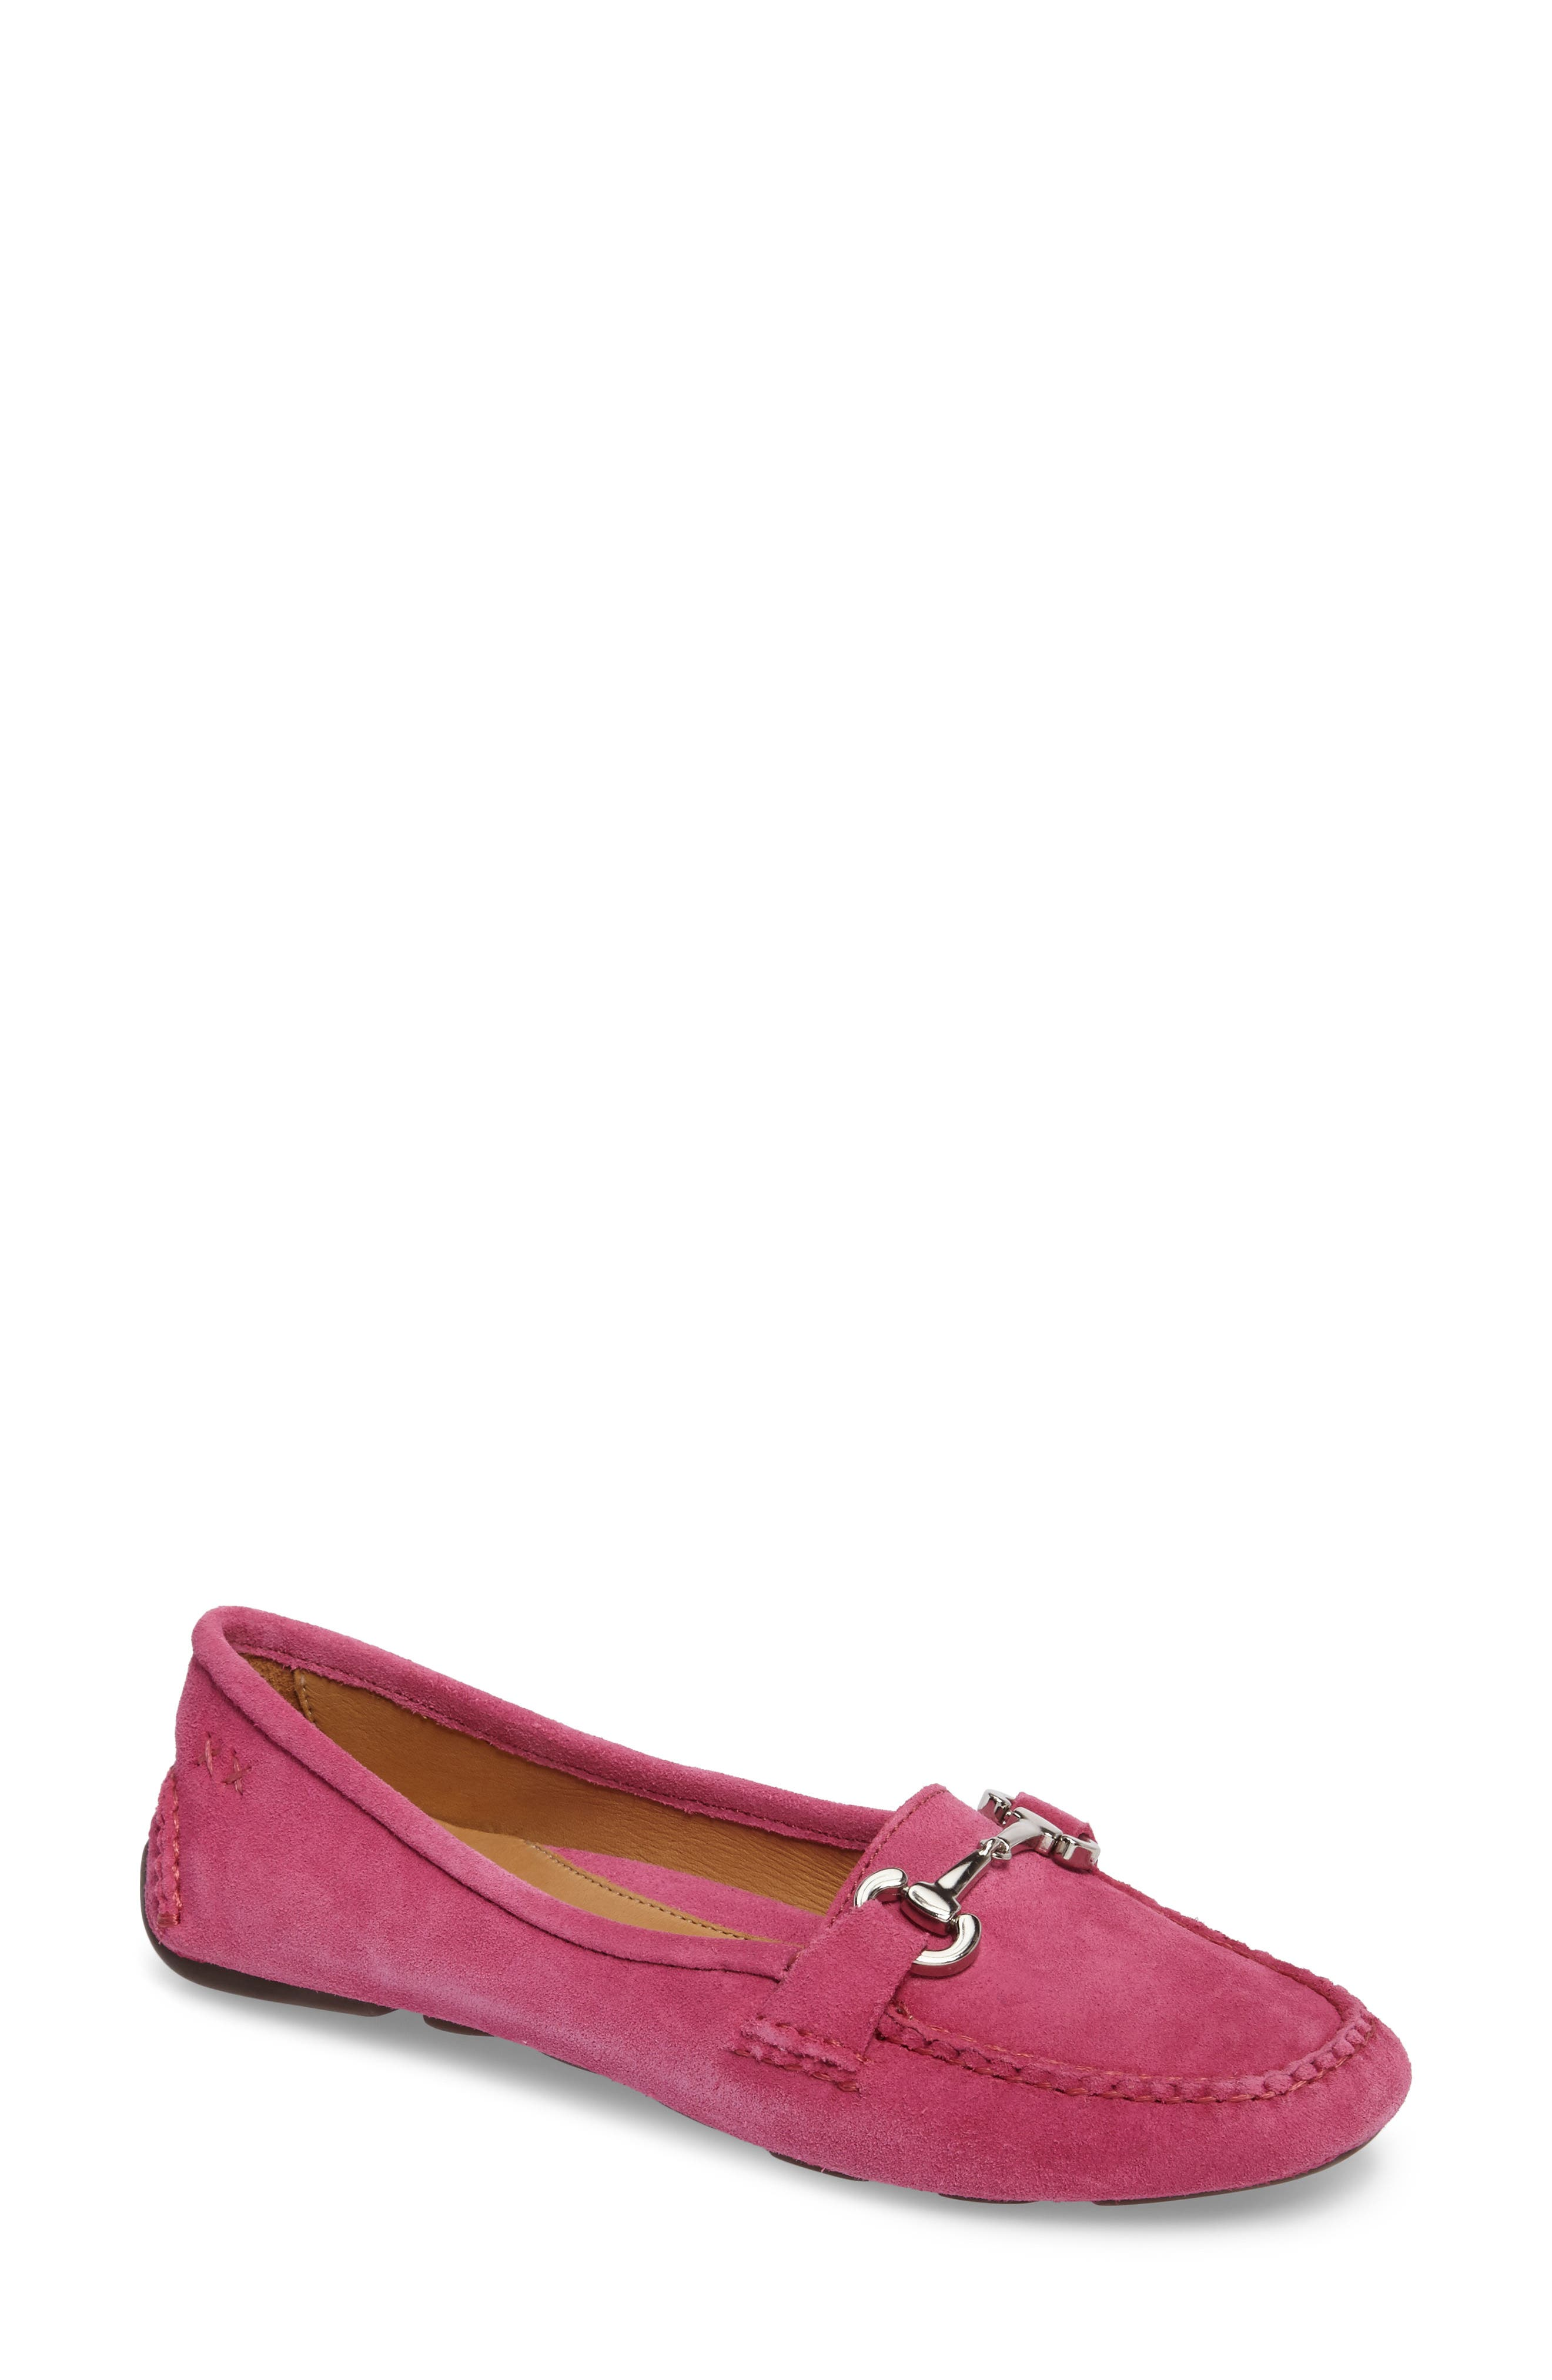 'Carrie' Loafer,                             Main thumbnail 1, color,                             670